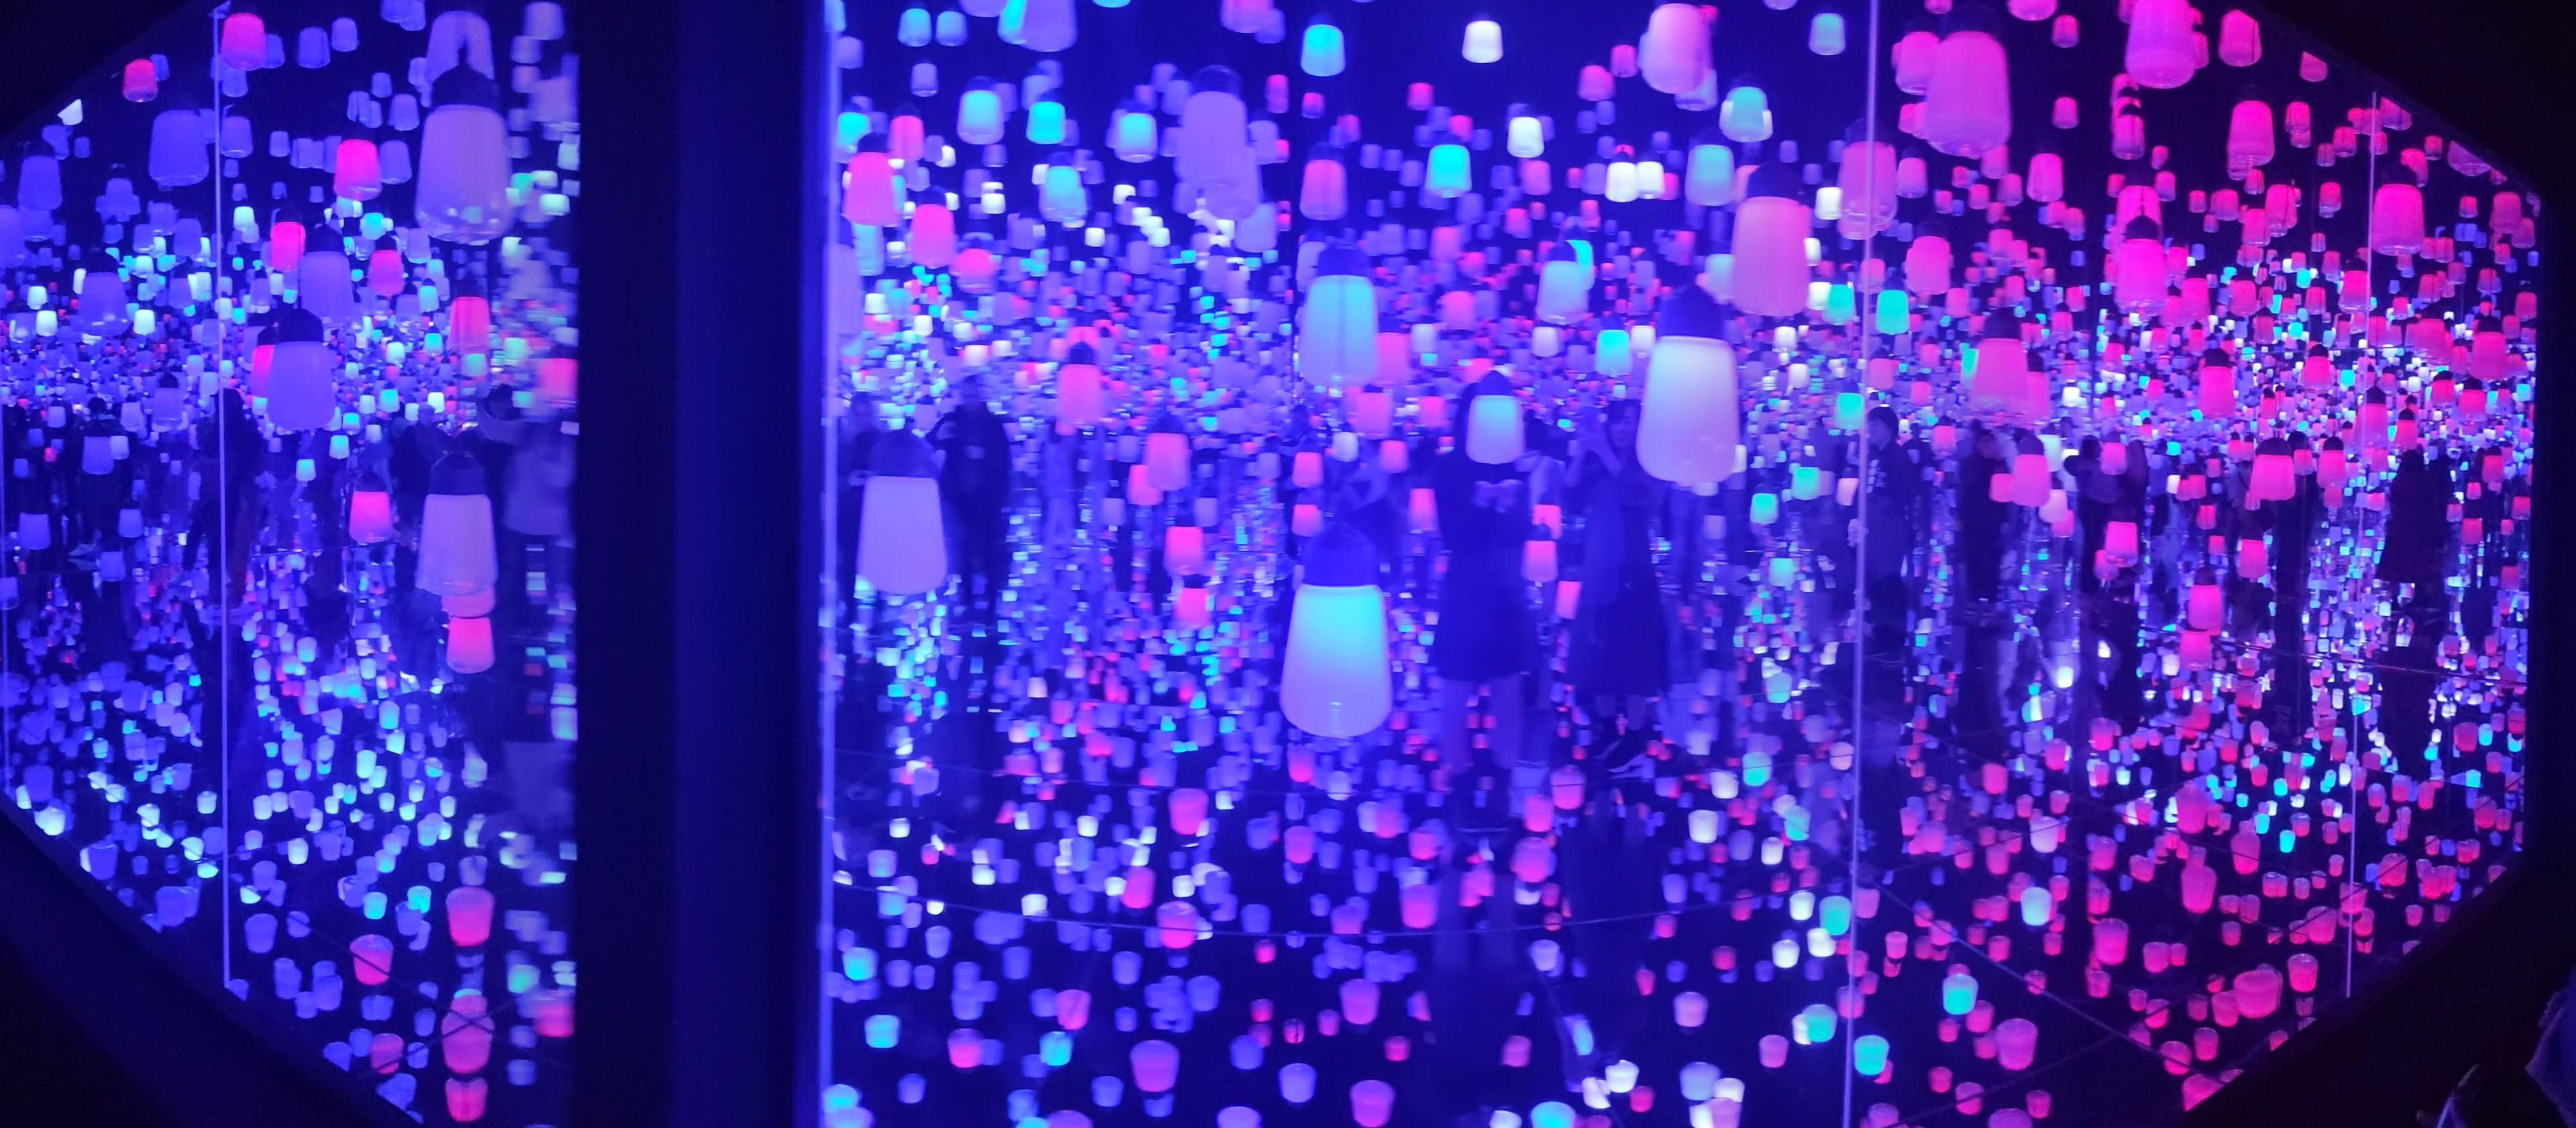 Teamlab Borderless Forest Of Resonating Lamps At Odaiba Tokyo Jan 20 In 2020 Odaiba Japanese Cooking Lamp